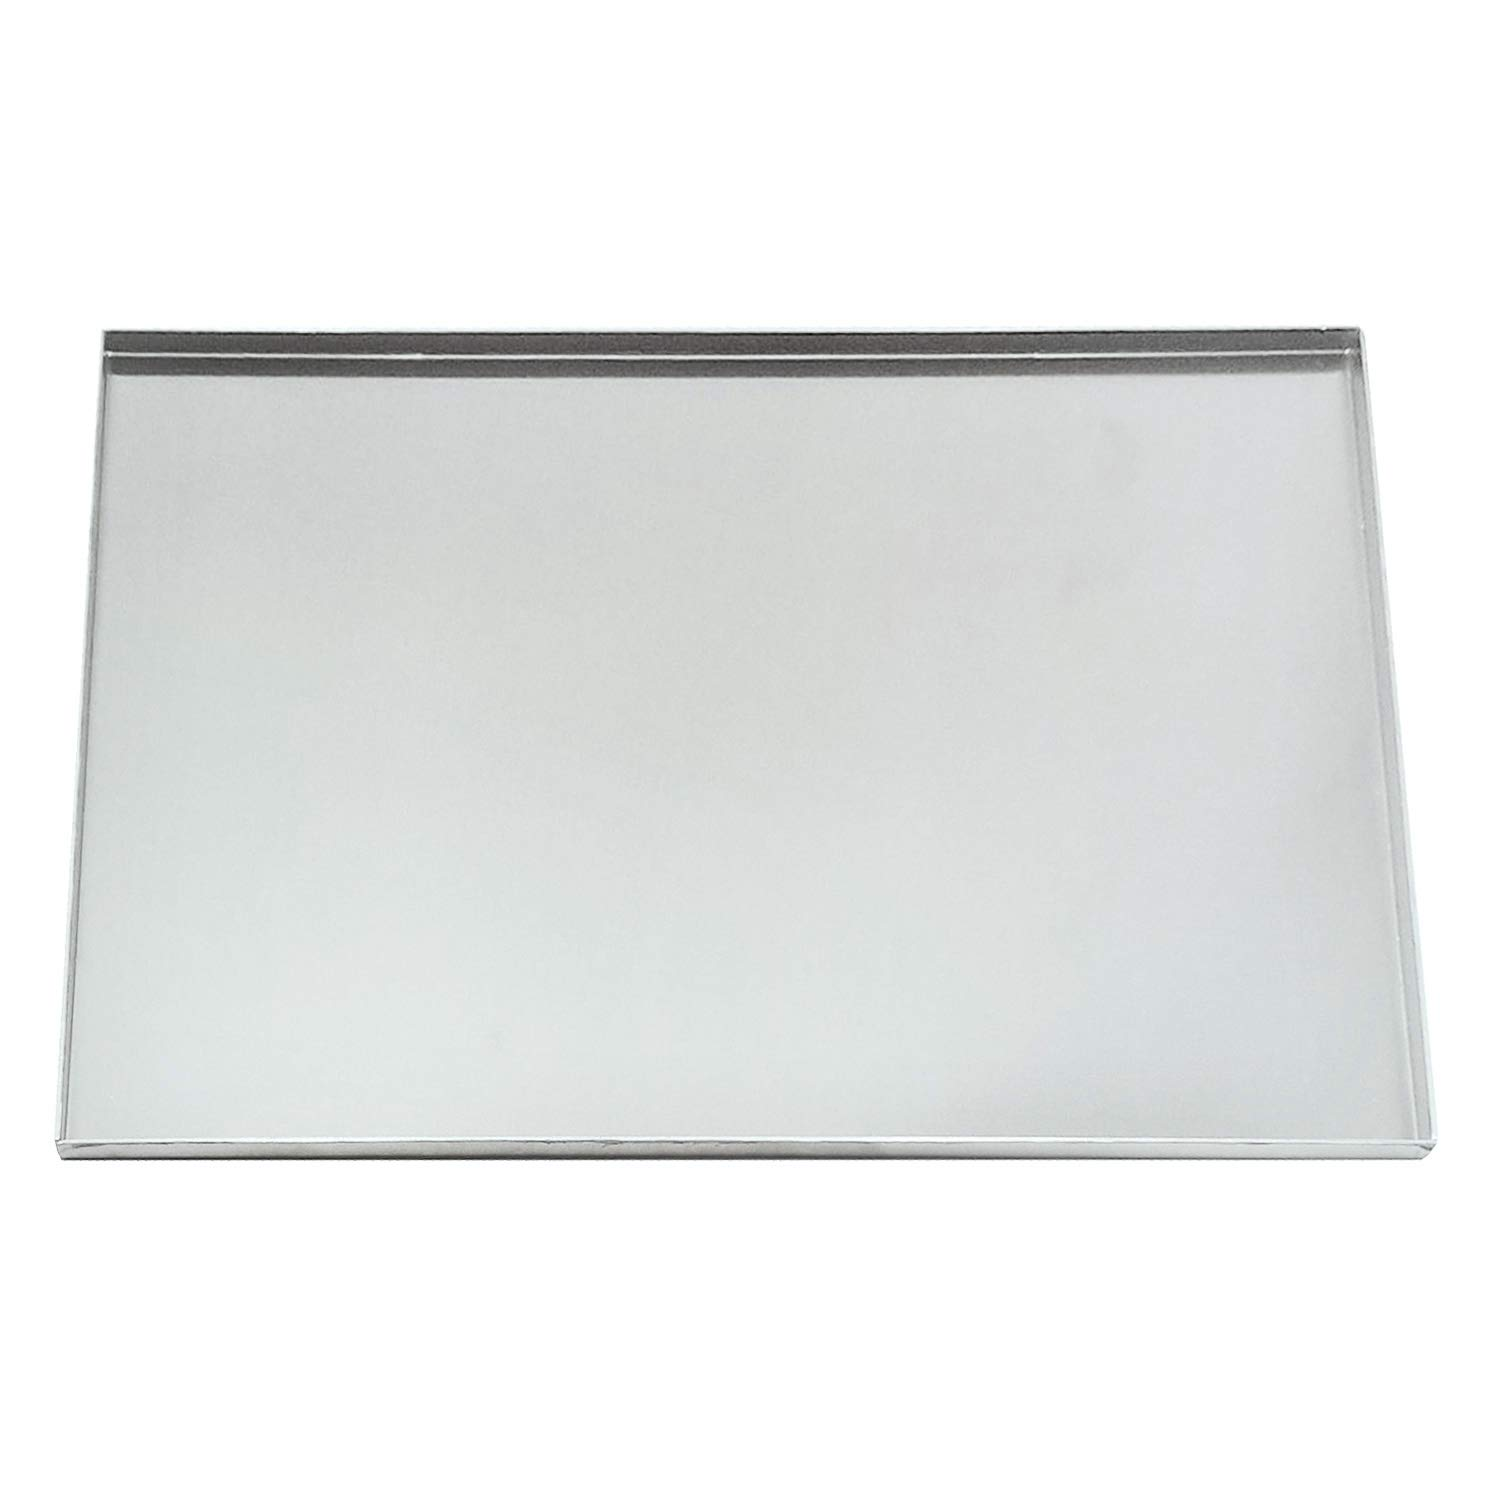 HFS (R) Brand New 1.9 Cf Vacuum Oven Shelf, Overall :16x12'' ; Solid, Aluminium; Replace or Extra Shelf for Vacuum Oven Dzf-6050